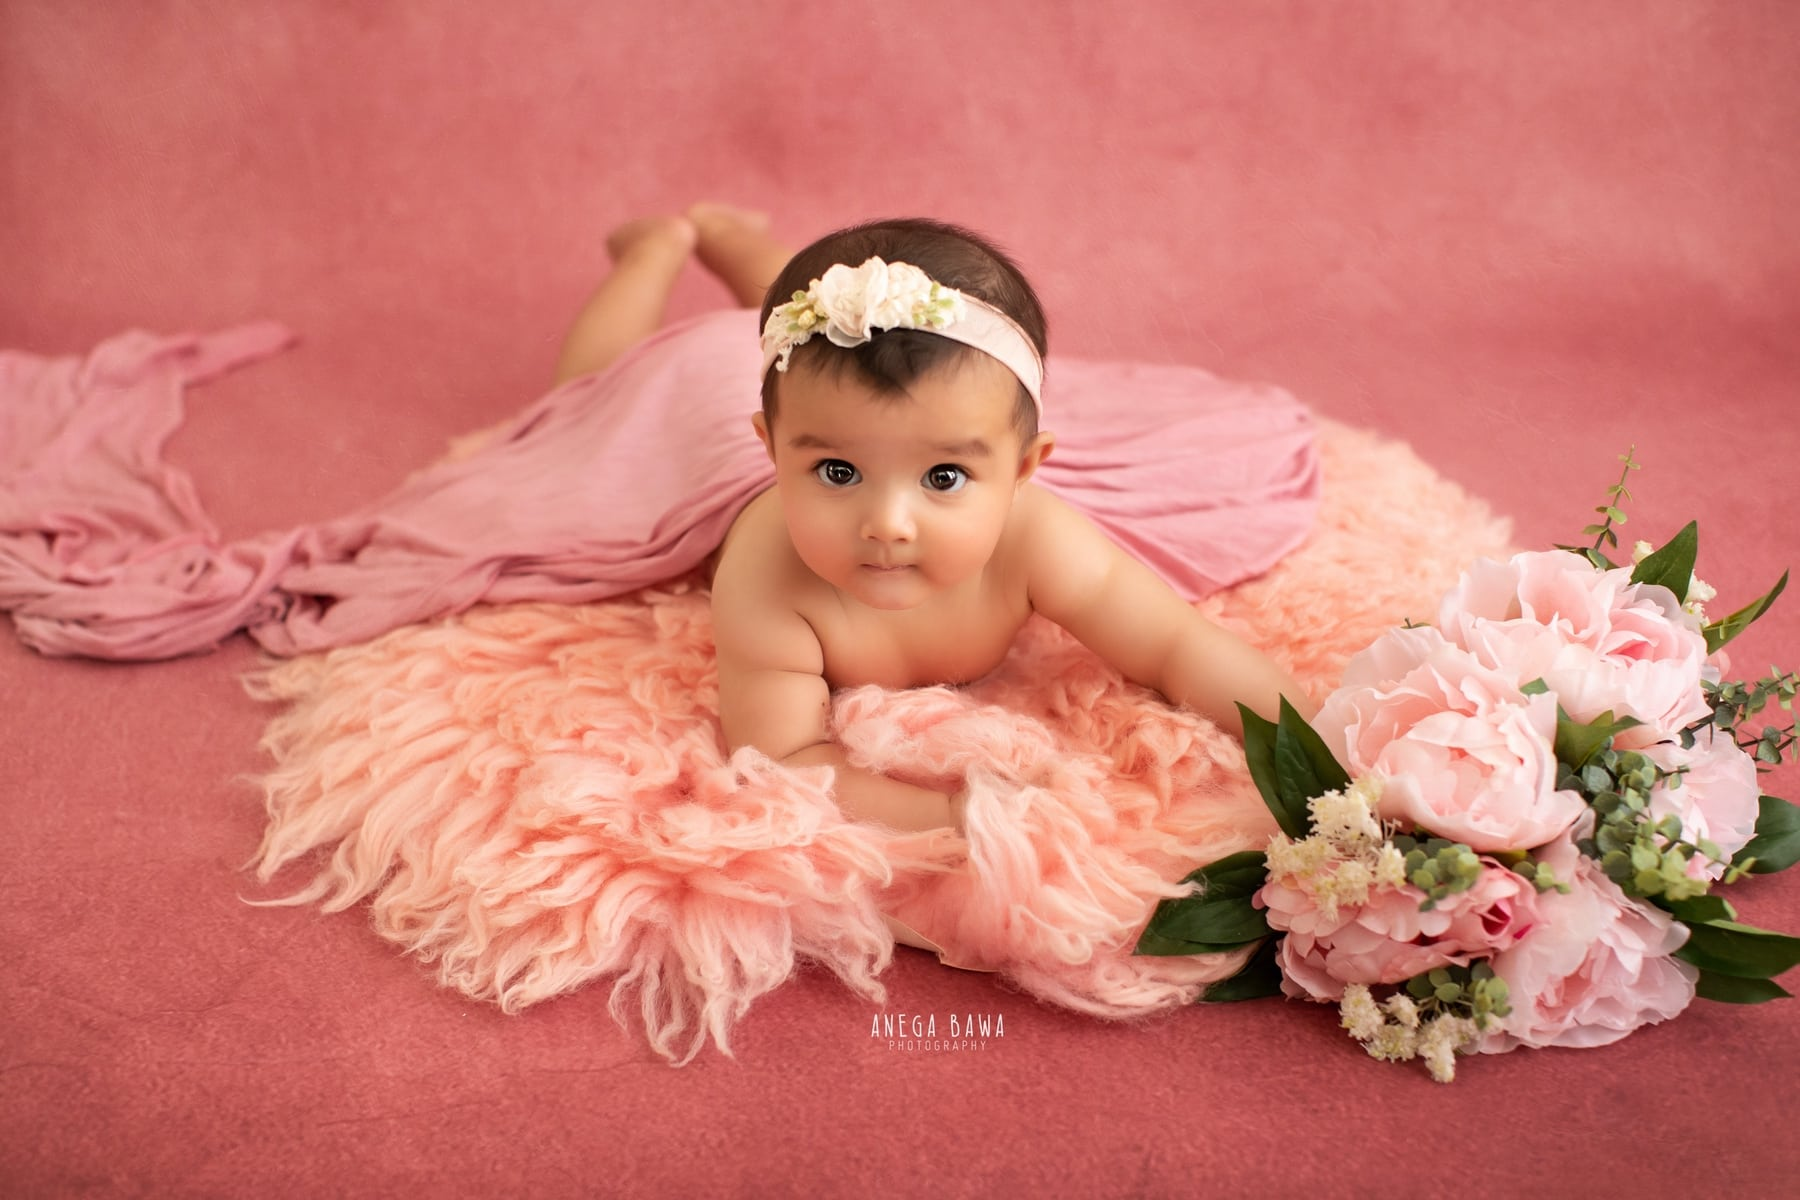 pink floral baby photography delhi 4 months baby girl photoshoot gurgaon anega bawa